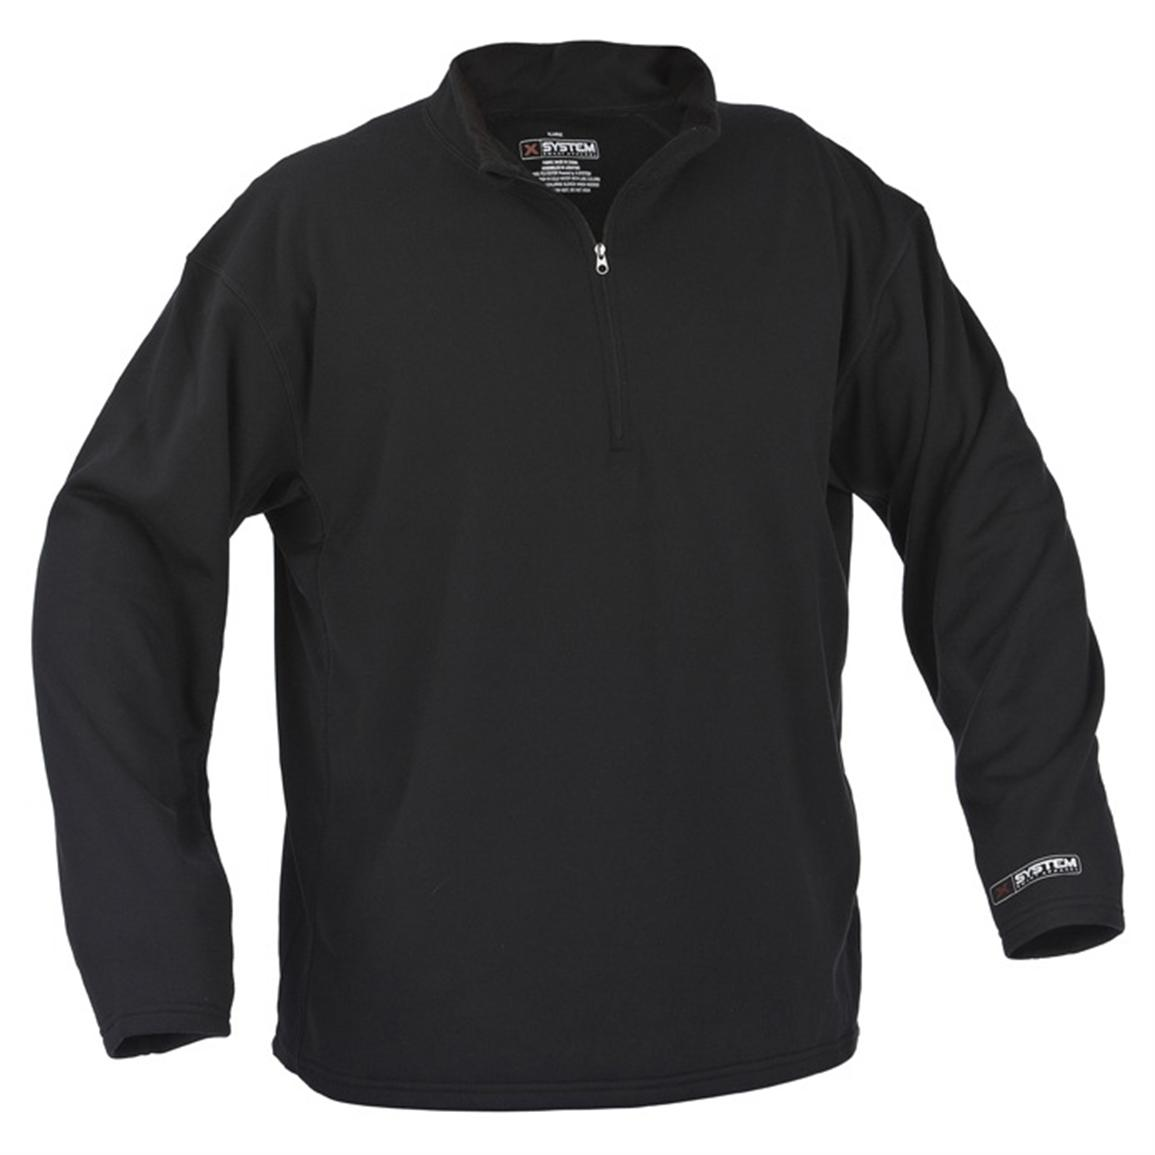 X-System Midweight Fleece Pullover, Black